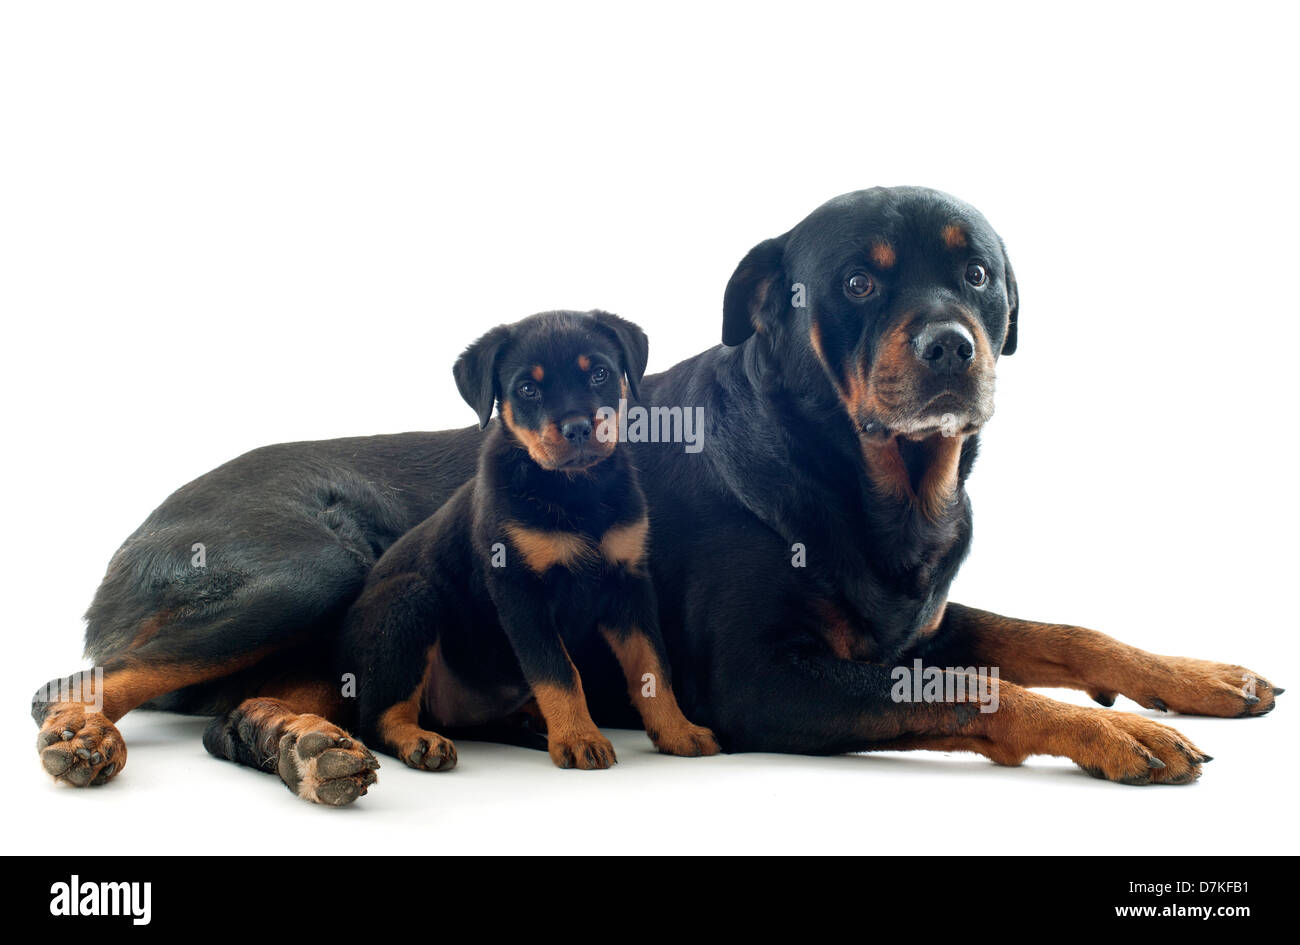 Portrait Of Purebred Rottweiler Puppy And Adult In Front Of White